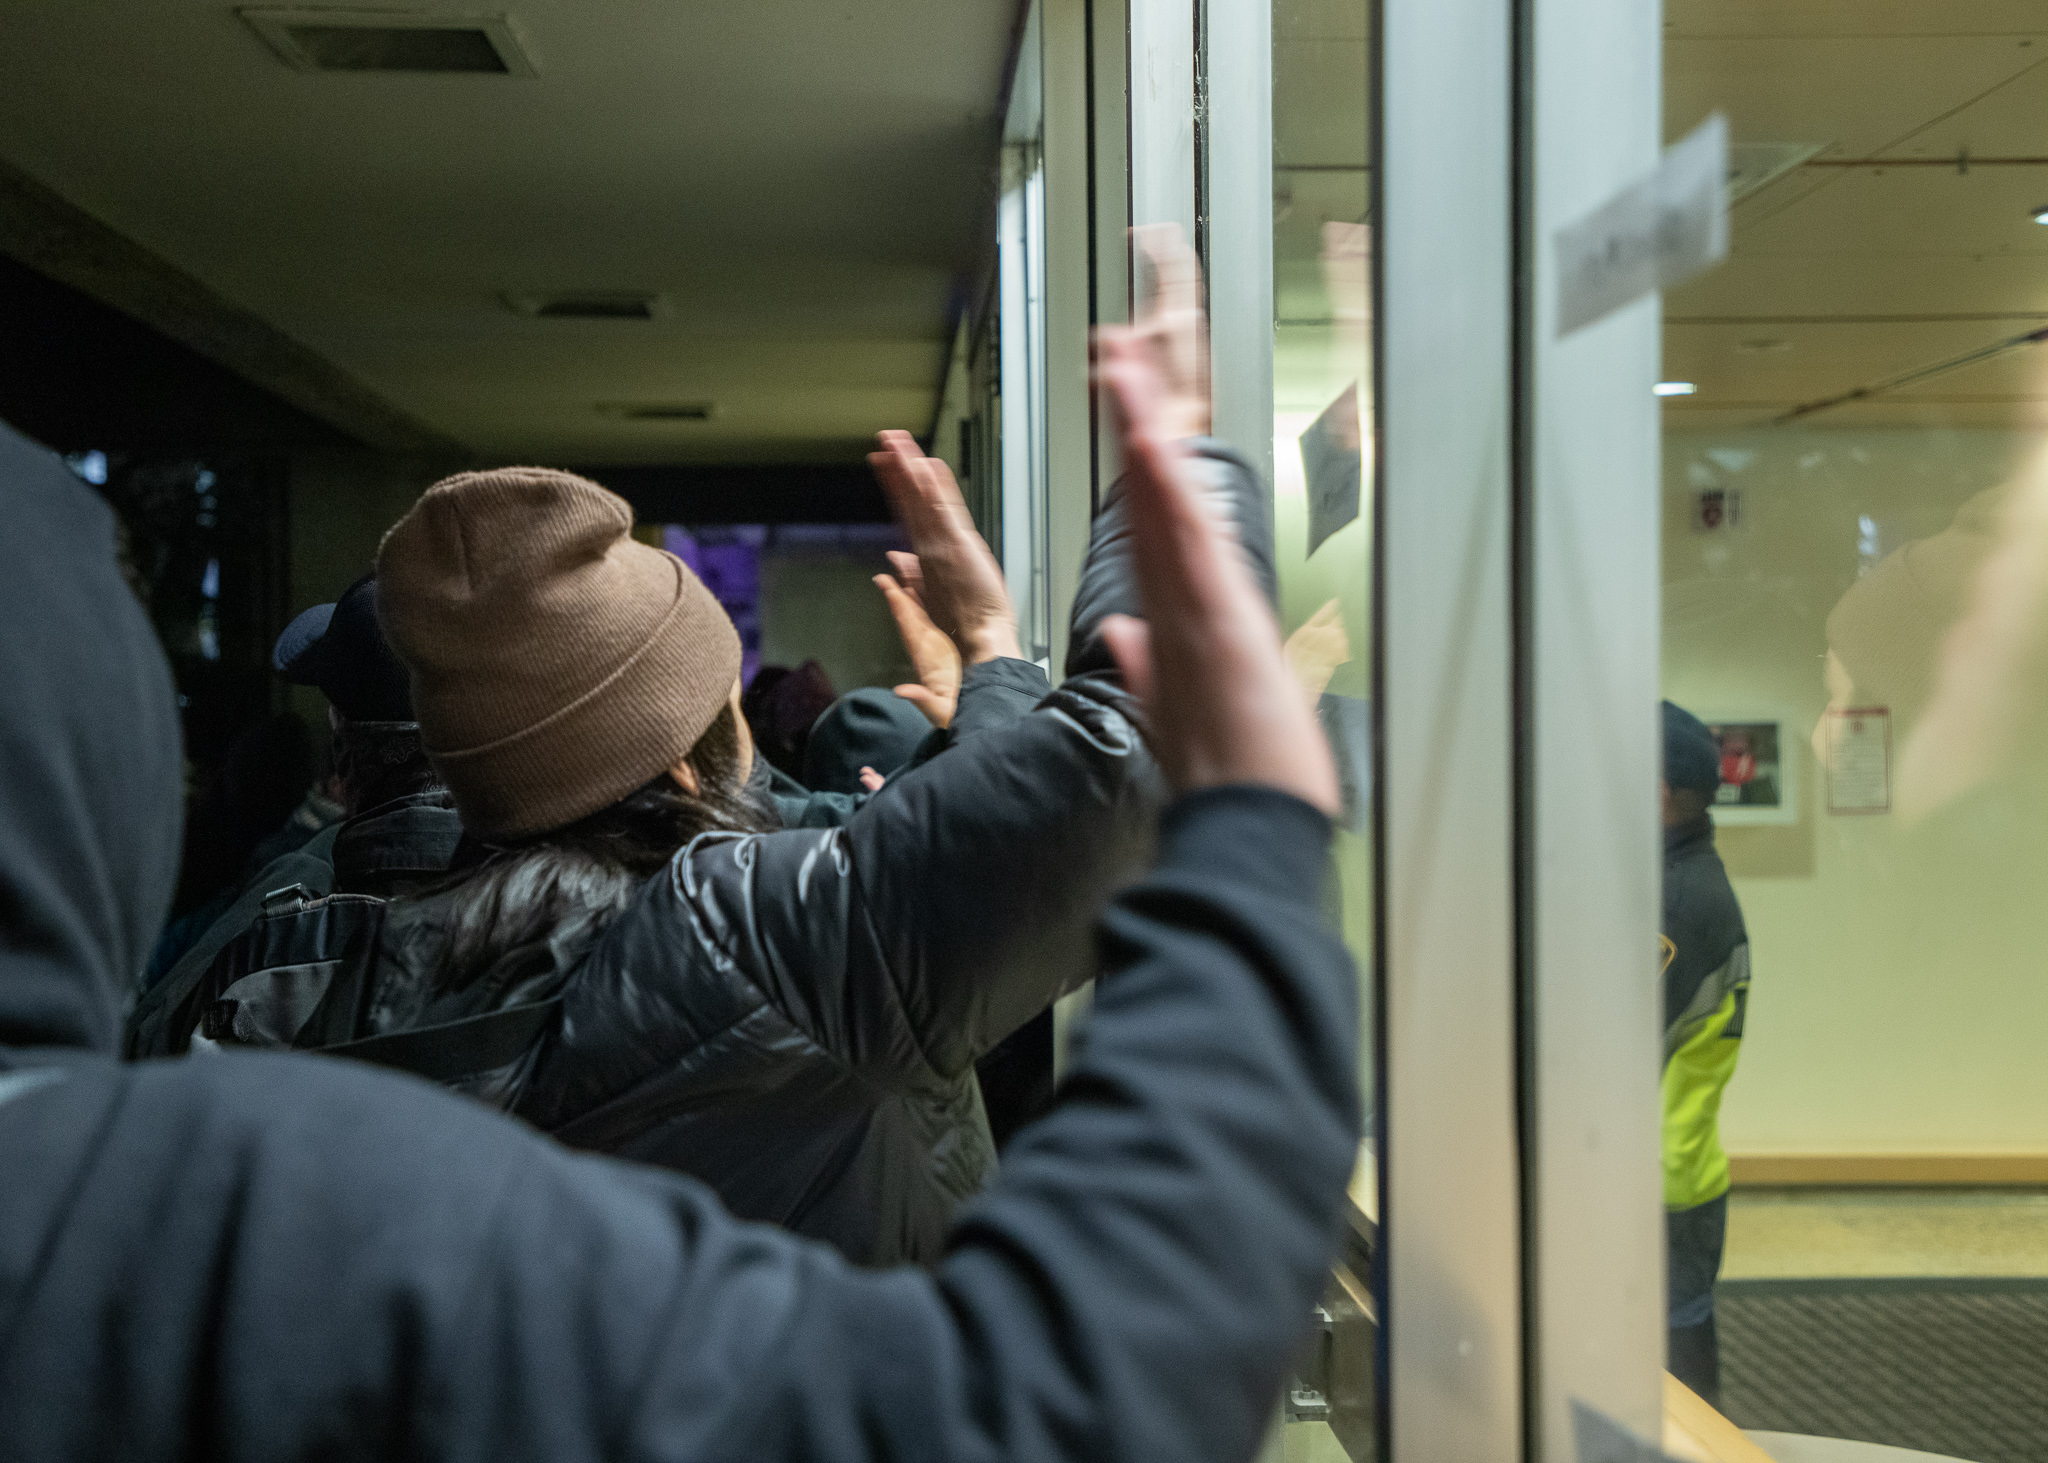 The protesters clustered around the entrance, chanting and beating the windows to disrupt the talk.